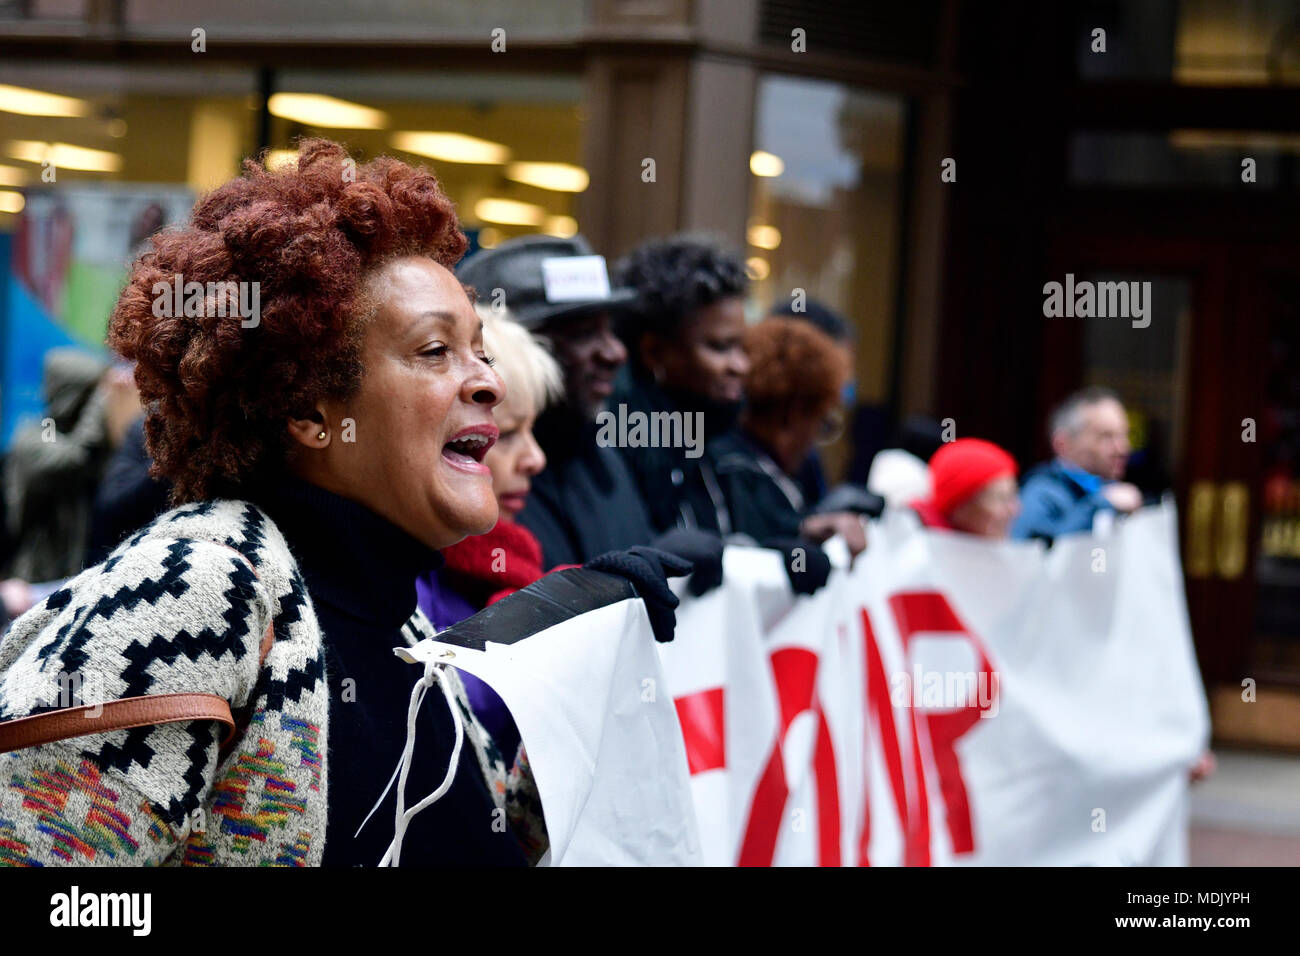 Philadelphia, USA. 19th Apr, 2018. Community members join religious leaders and clergymen with Philadelphians Organized to Witness, Empower and Rebuild (POWER) hold a Police Accountability rally, followed by a protest march starting at Philadelphia Police Dept. headquarters and ending at City Hall in center City Philadelphia, PA, on April19, 2018. The protest is a reaction to the recent controversial arrest at a Center city Starbucks of two black men. Credit: Bastiaan Slabbers/Alamy Live News - Stock Image